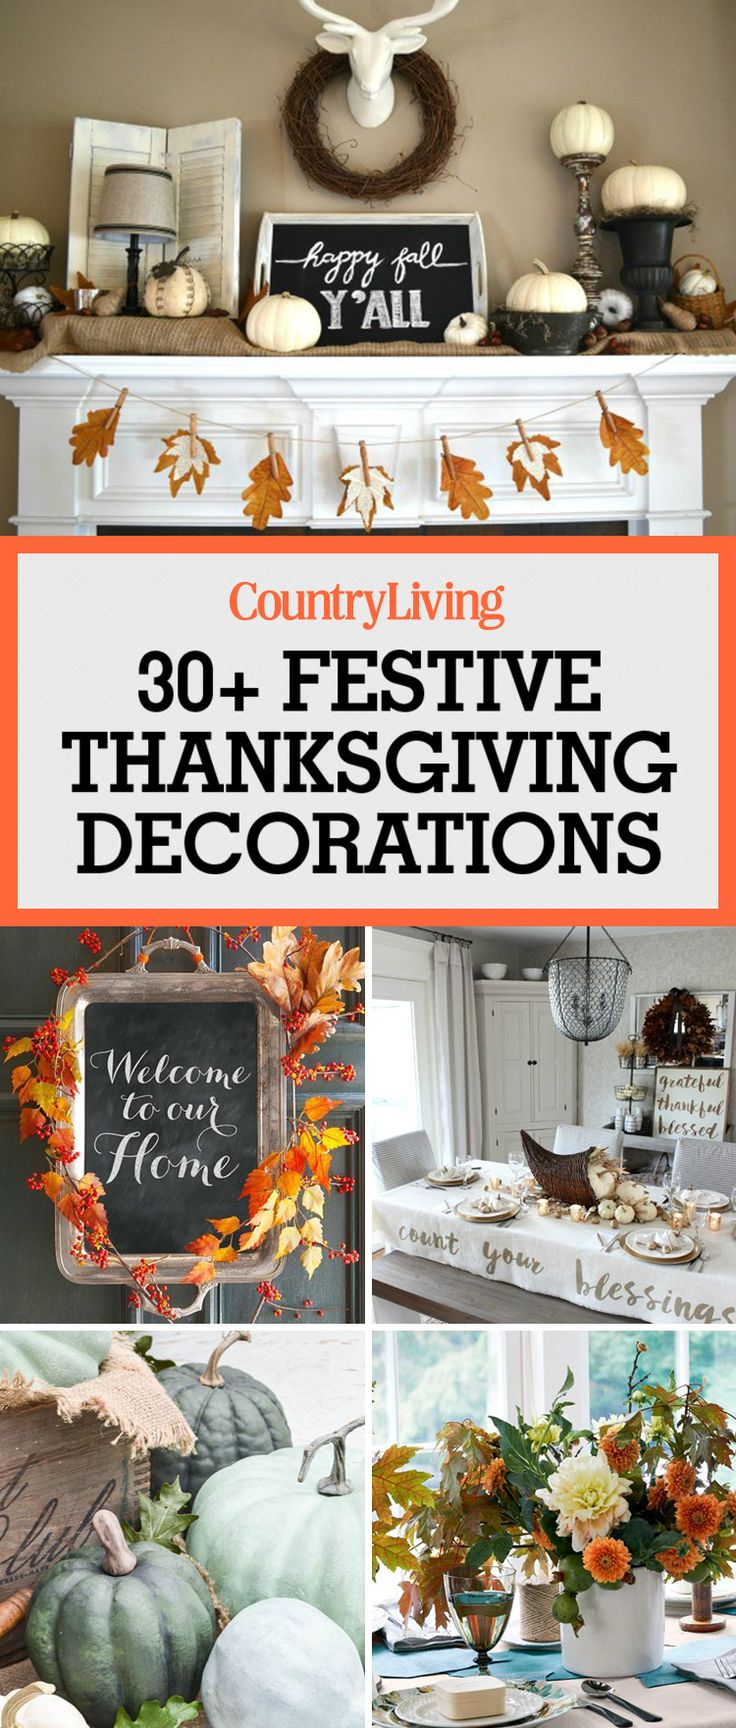 40 Thanksgiving Decorations That Will Make Your Home Feel Cozier Than Ever & 380 best Thanksgiving Decorating Ideas images on Pinterest ...